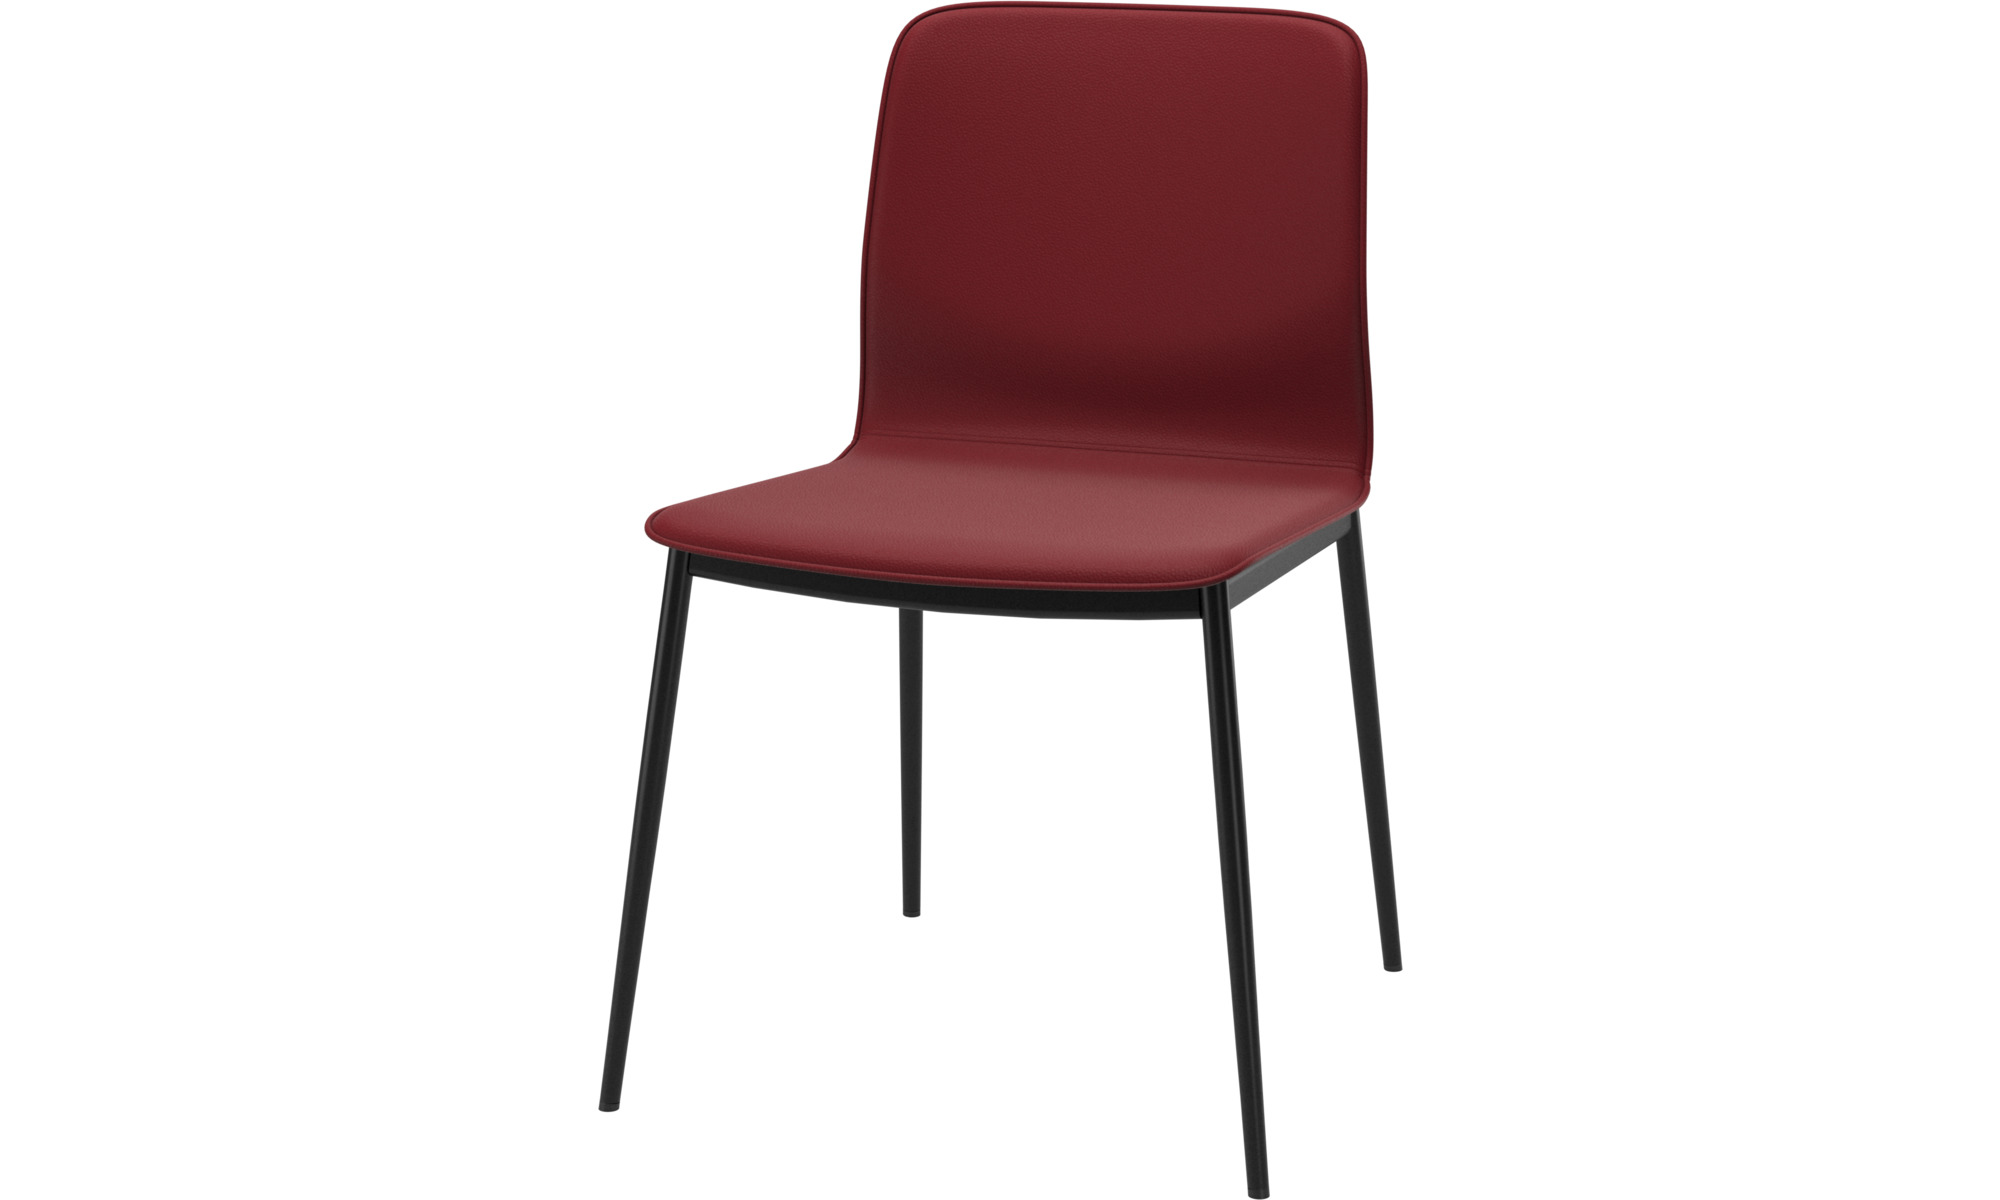 Dining chairs - Newport dining chair - Red - Leather